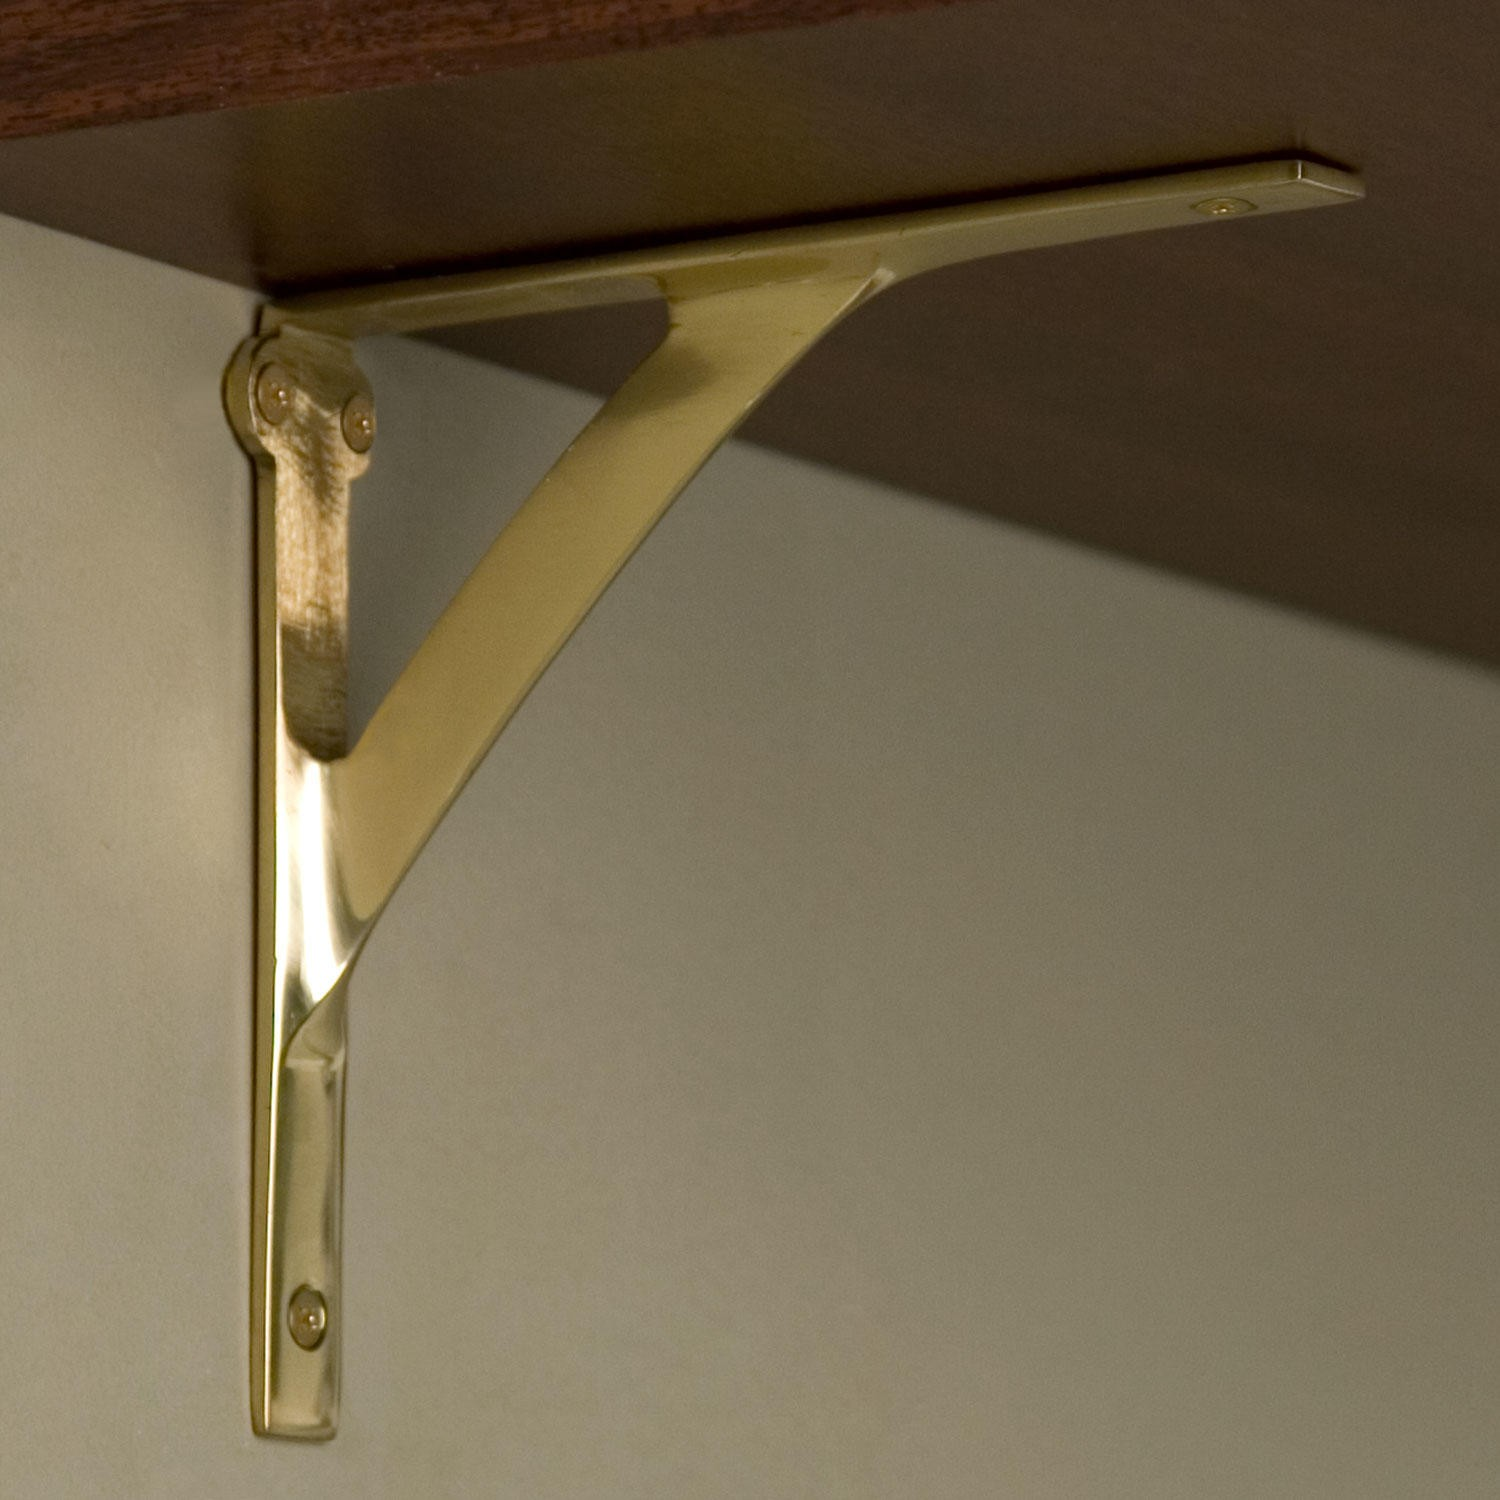 tips ideas interesting floating shelves material design with metal brackets for shelving bracket system hang walmar brass shelf off white wall adhesive hooks mounted fan canadian